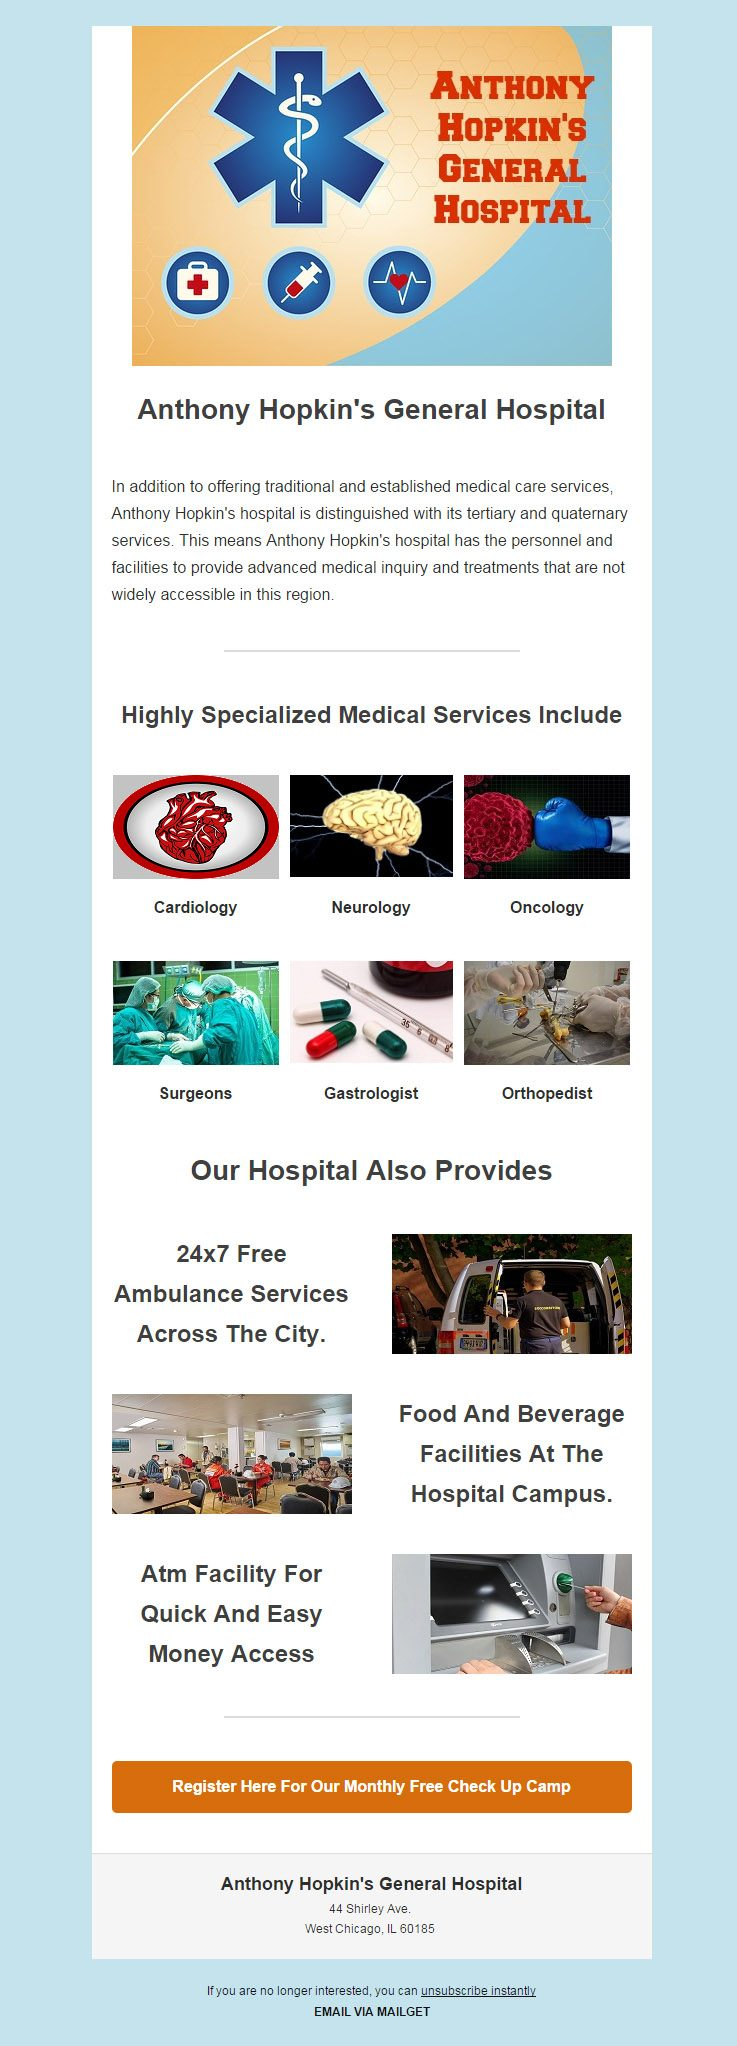 Email Marketing Service For Hospitals, Health Centers & Nursing Homes